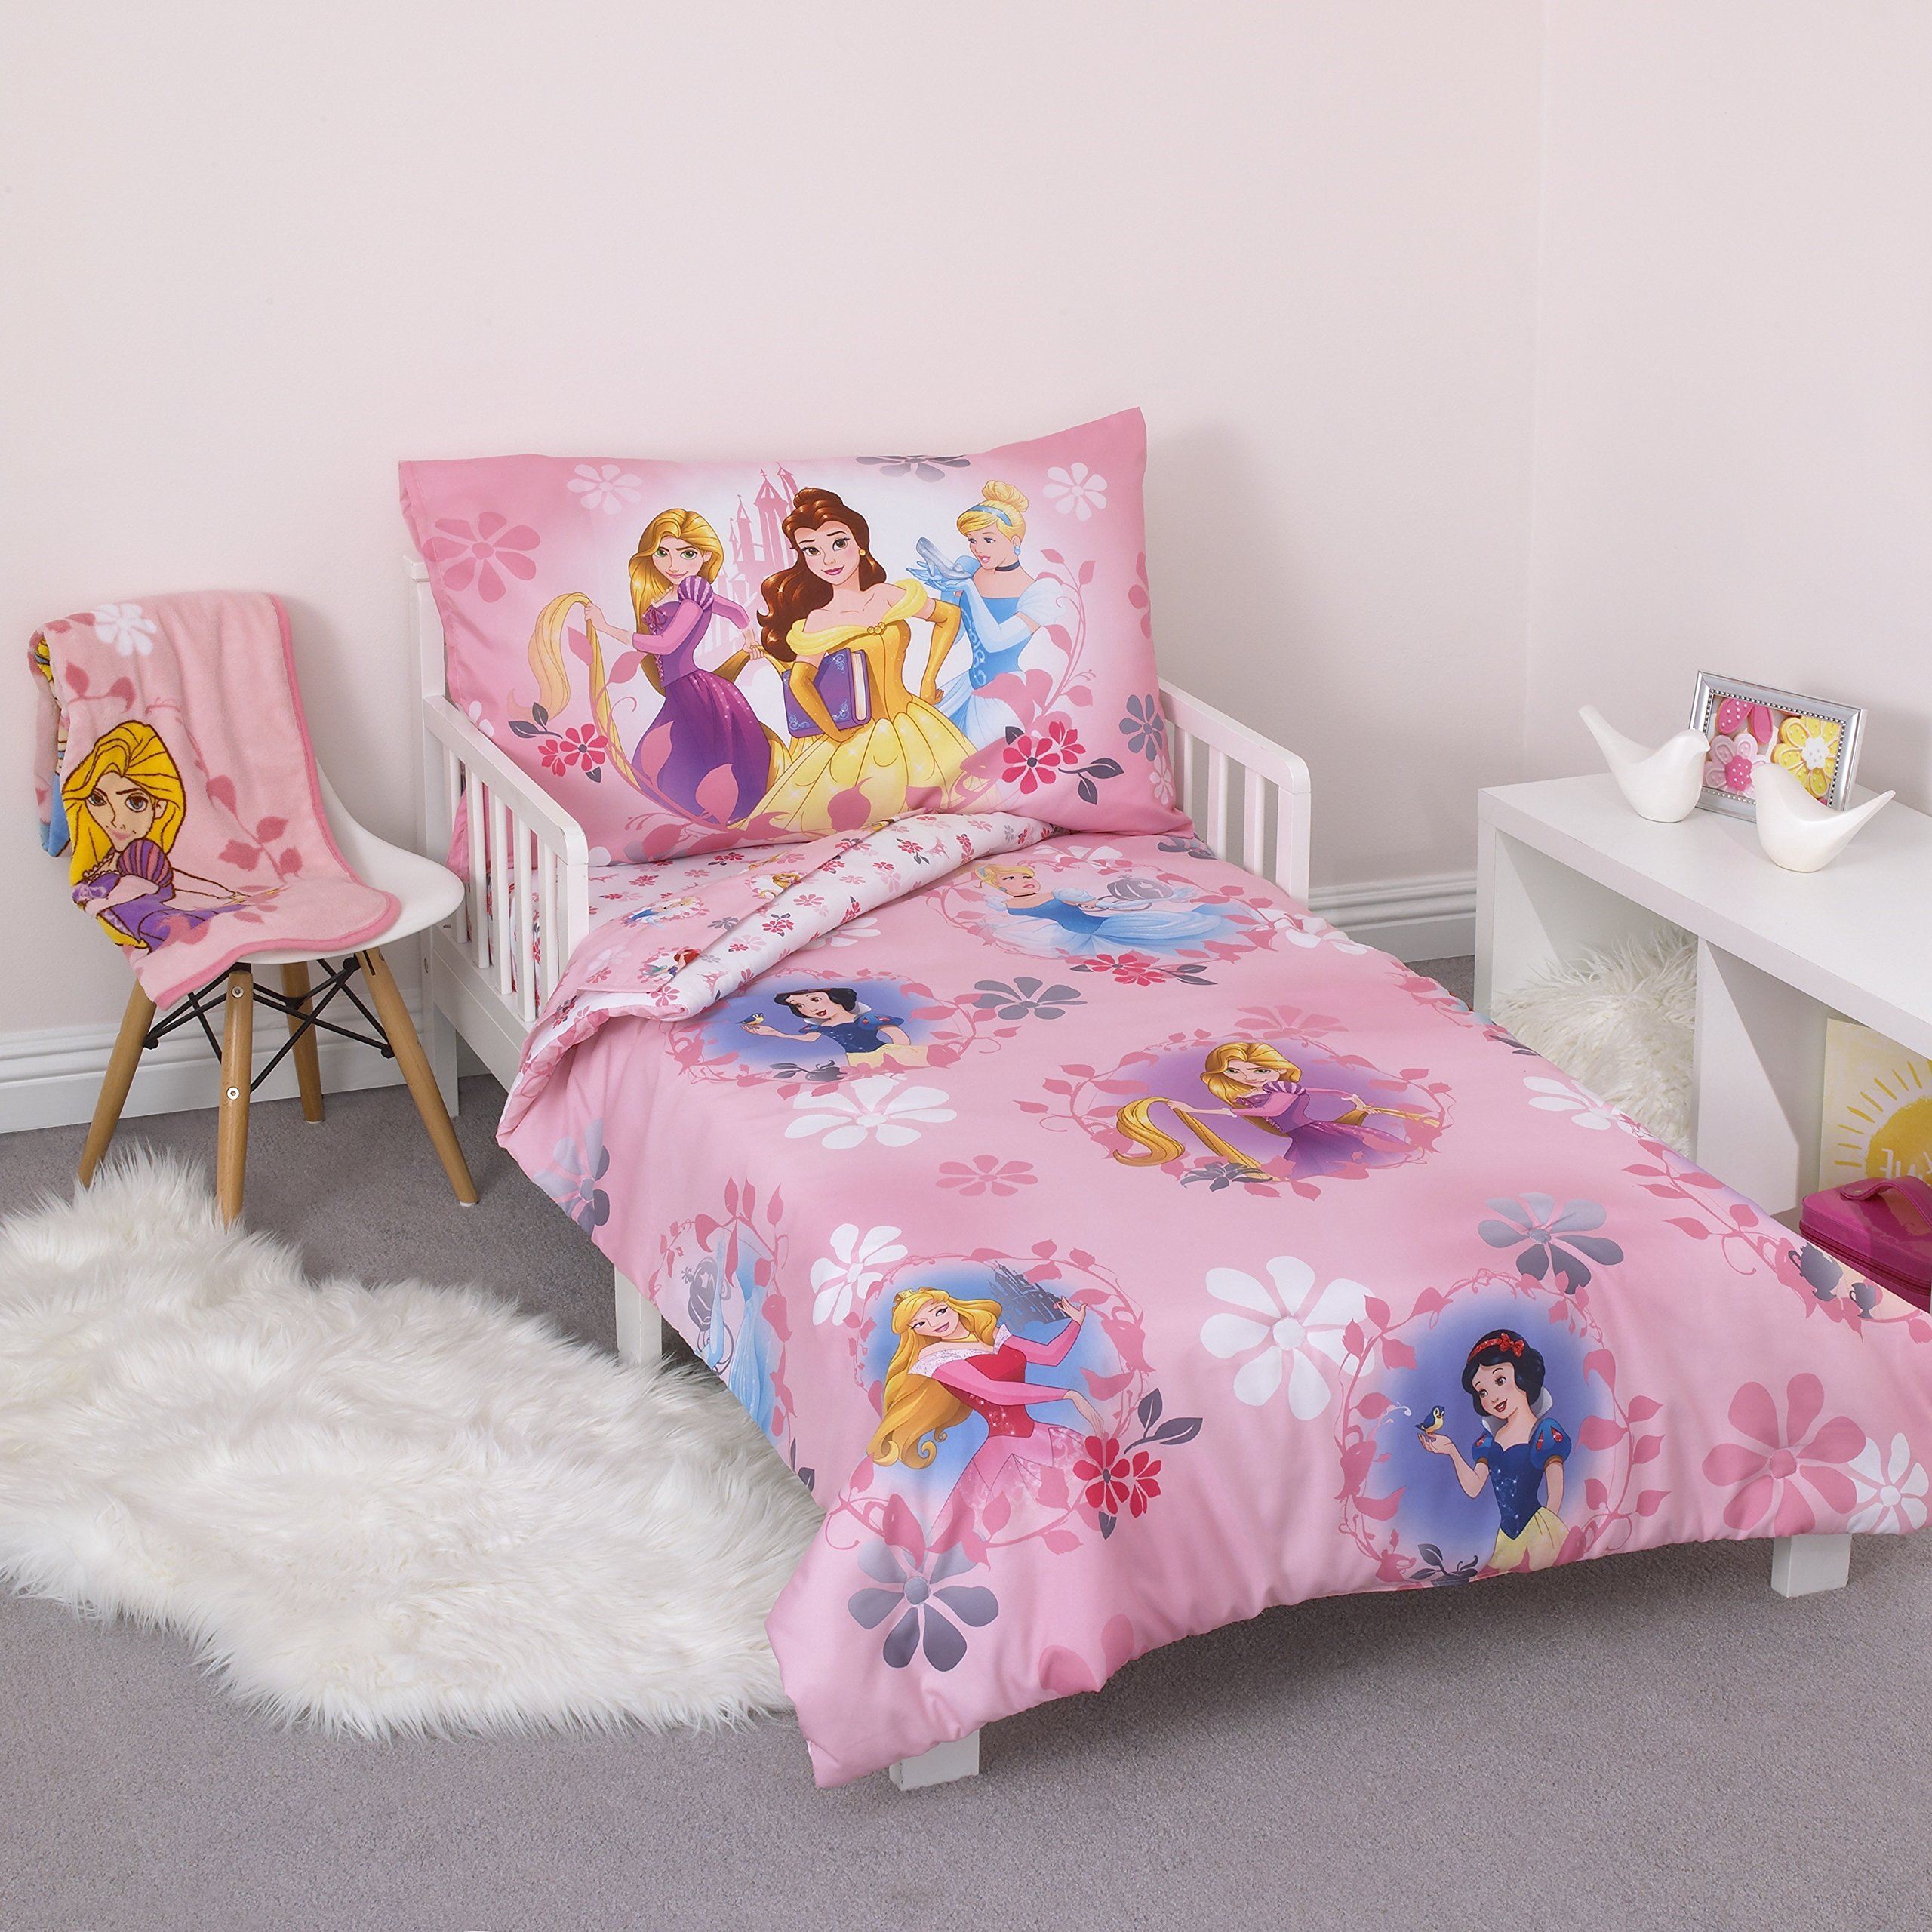 Toddler Girl Bedroom Sets: Amazon.com : Delta Children Disney Princess Plastic